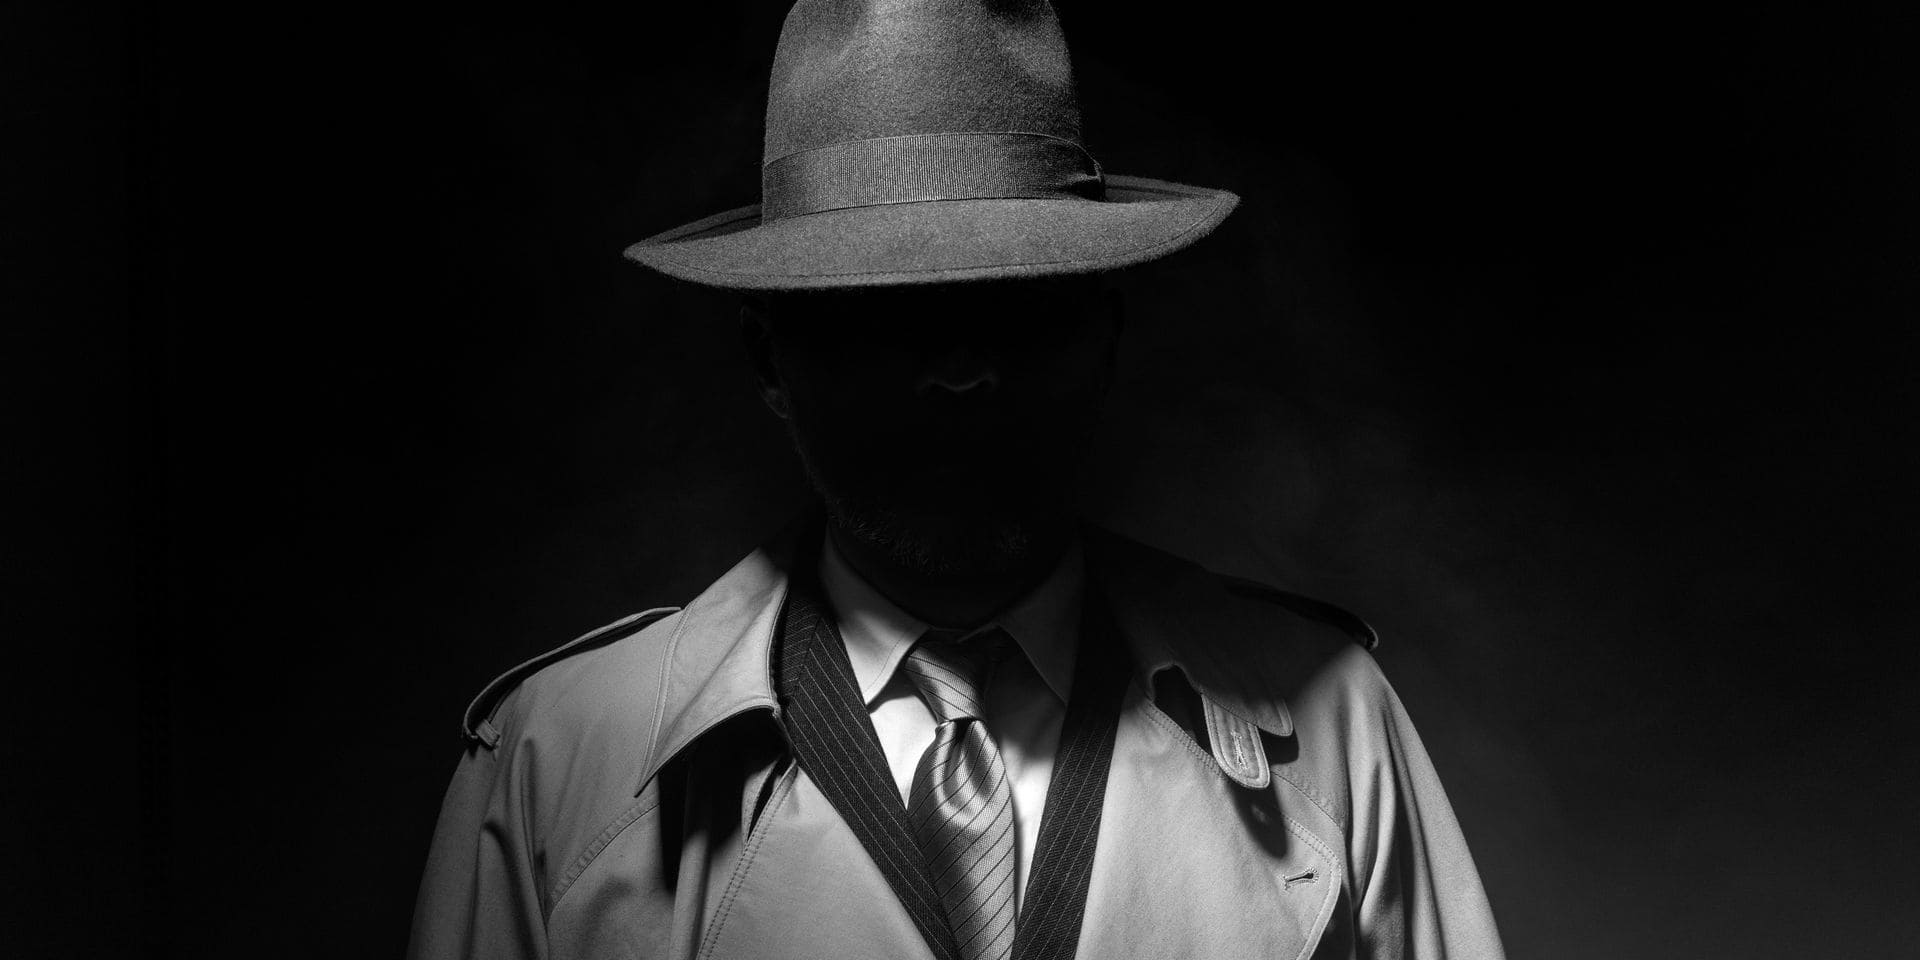 Man,Posing,In,The,Dark,With,A,Fedora,Hat,And